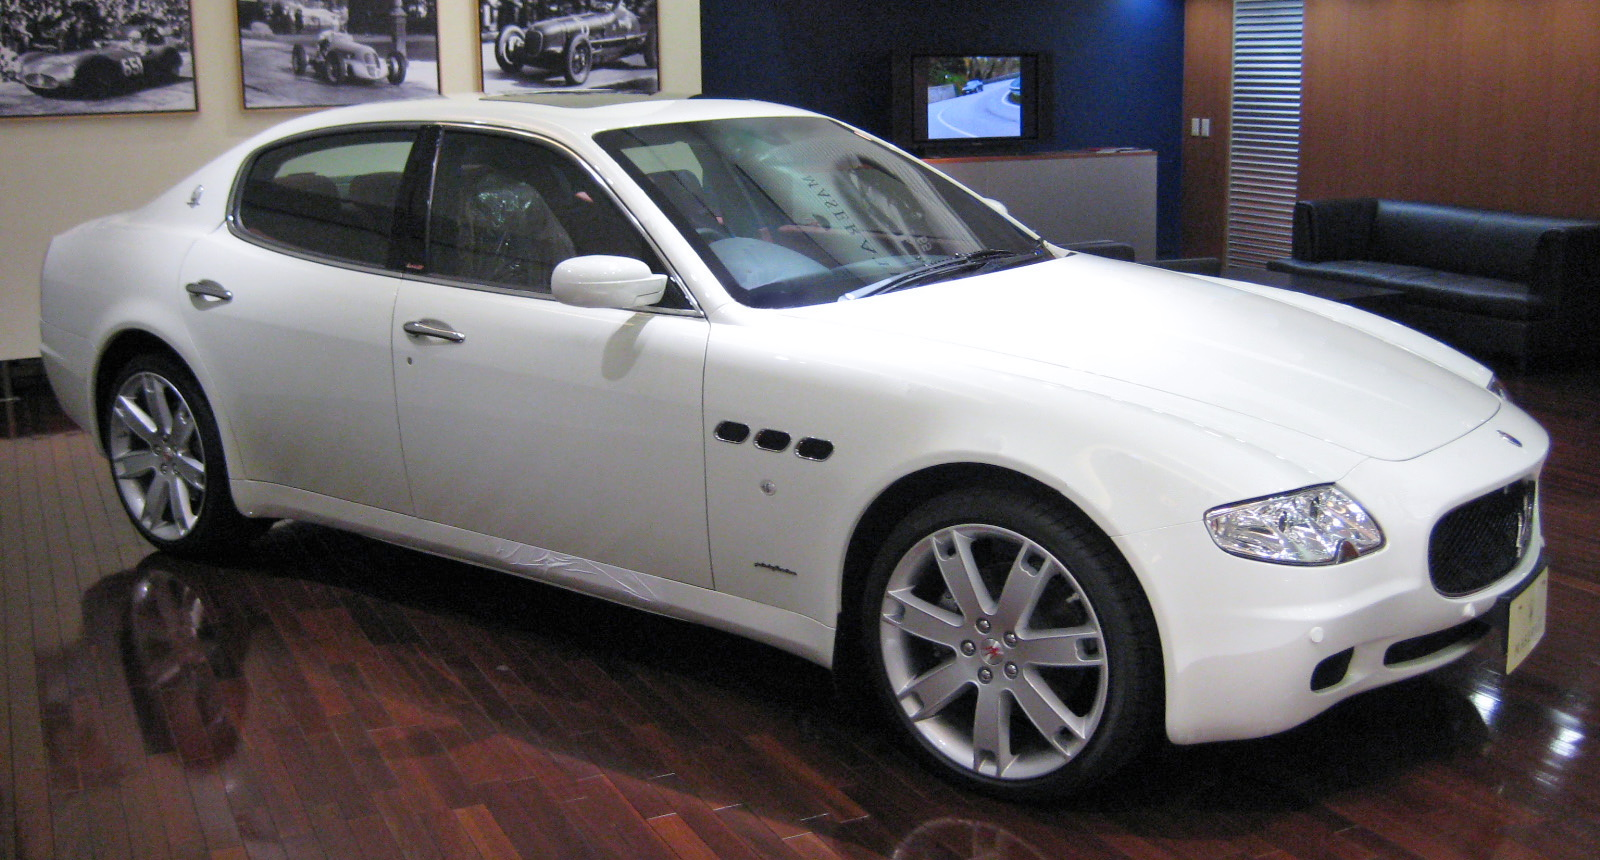 file maserati quattroporte v 01 jpg wikipedia. Black Bedroom Furniture Sets. Home Design Ideas